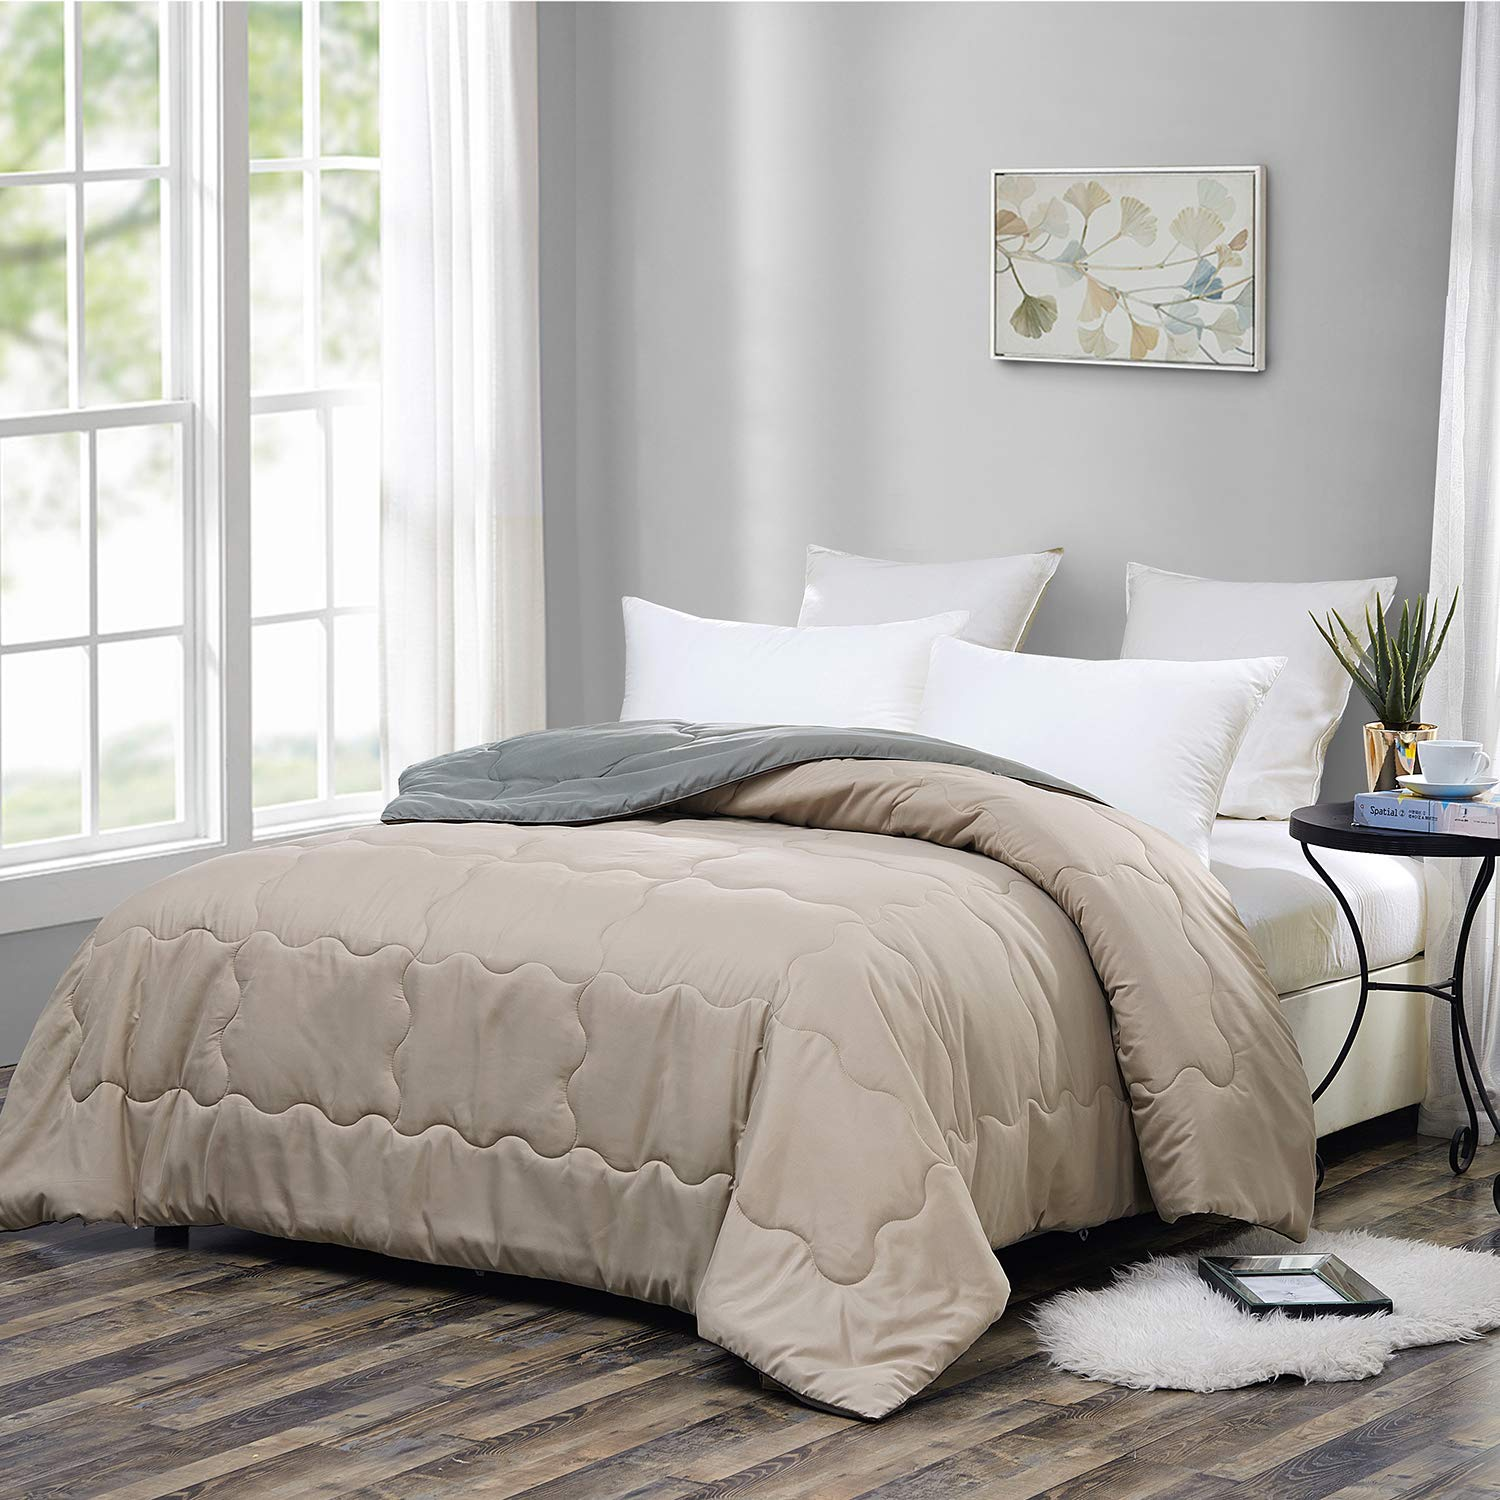 Down Alternative White Comforter-Queen Size Reversible Hypoallergenic Duvet Insert or Stand-Alone Quilted Bed Comforter with Plush Microfiber Filling,Corner Tabs,Machine Washable- OMYSTYLE 88x88inches,White